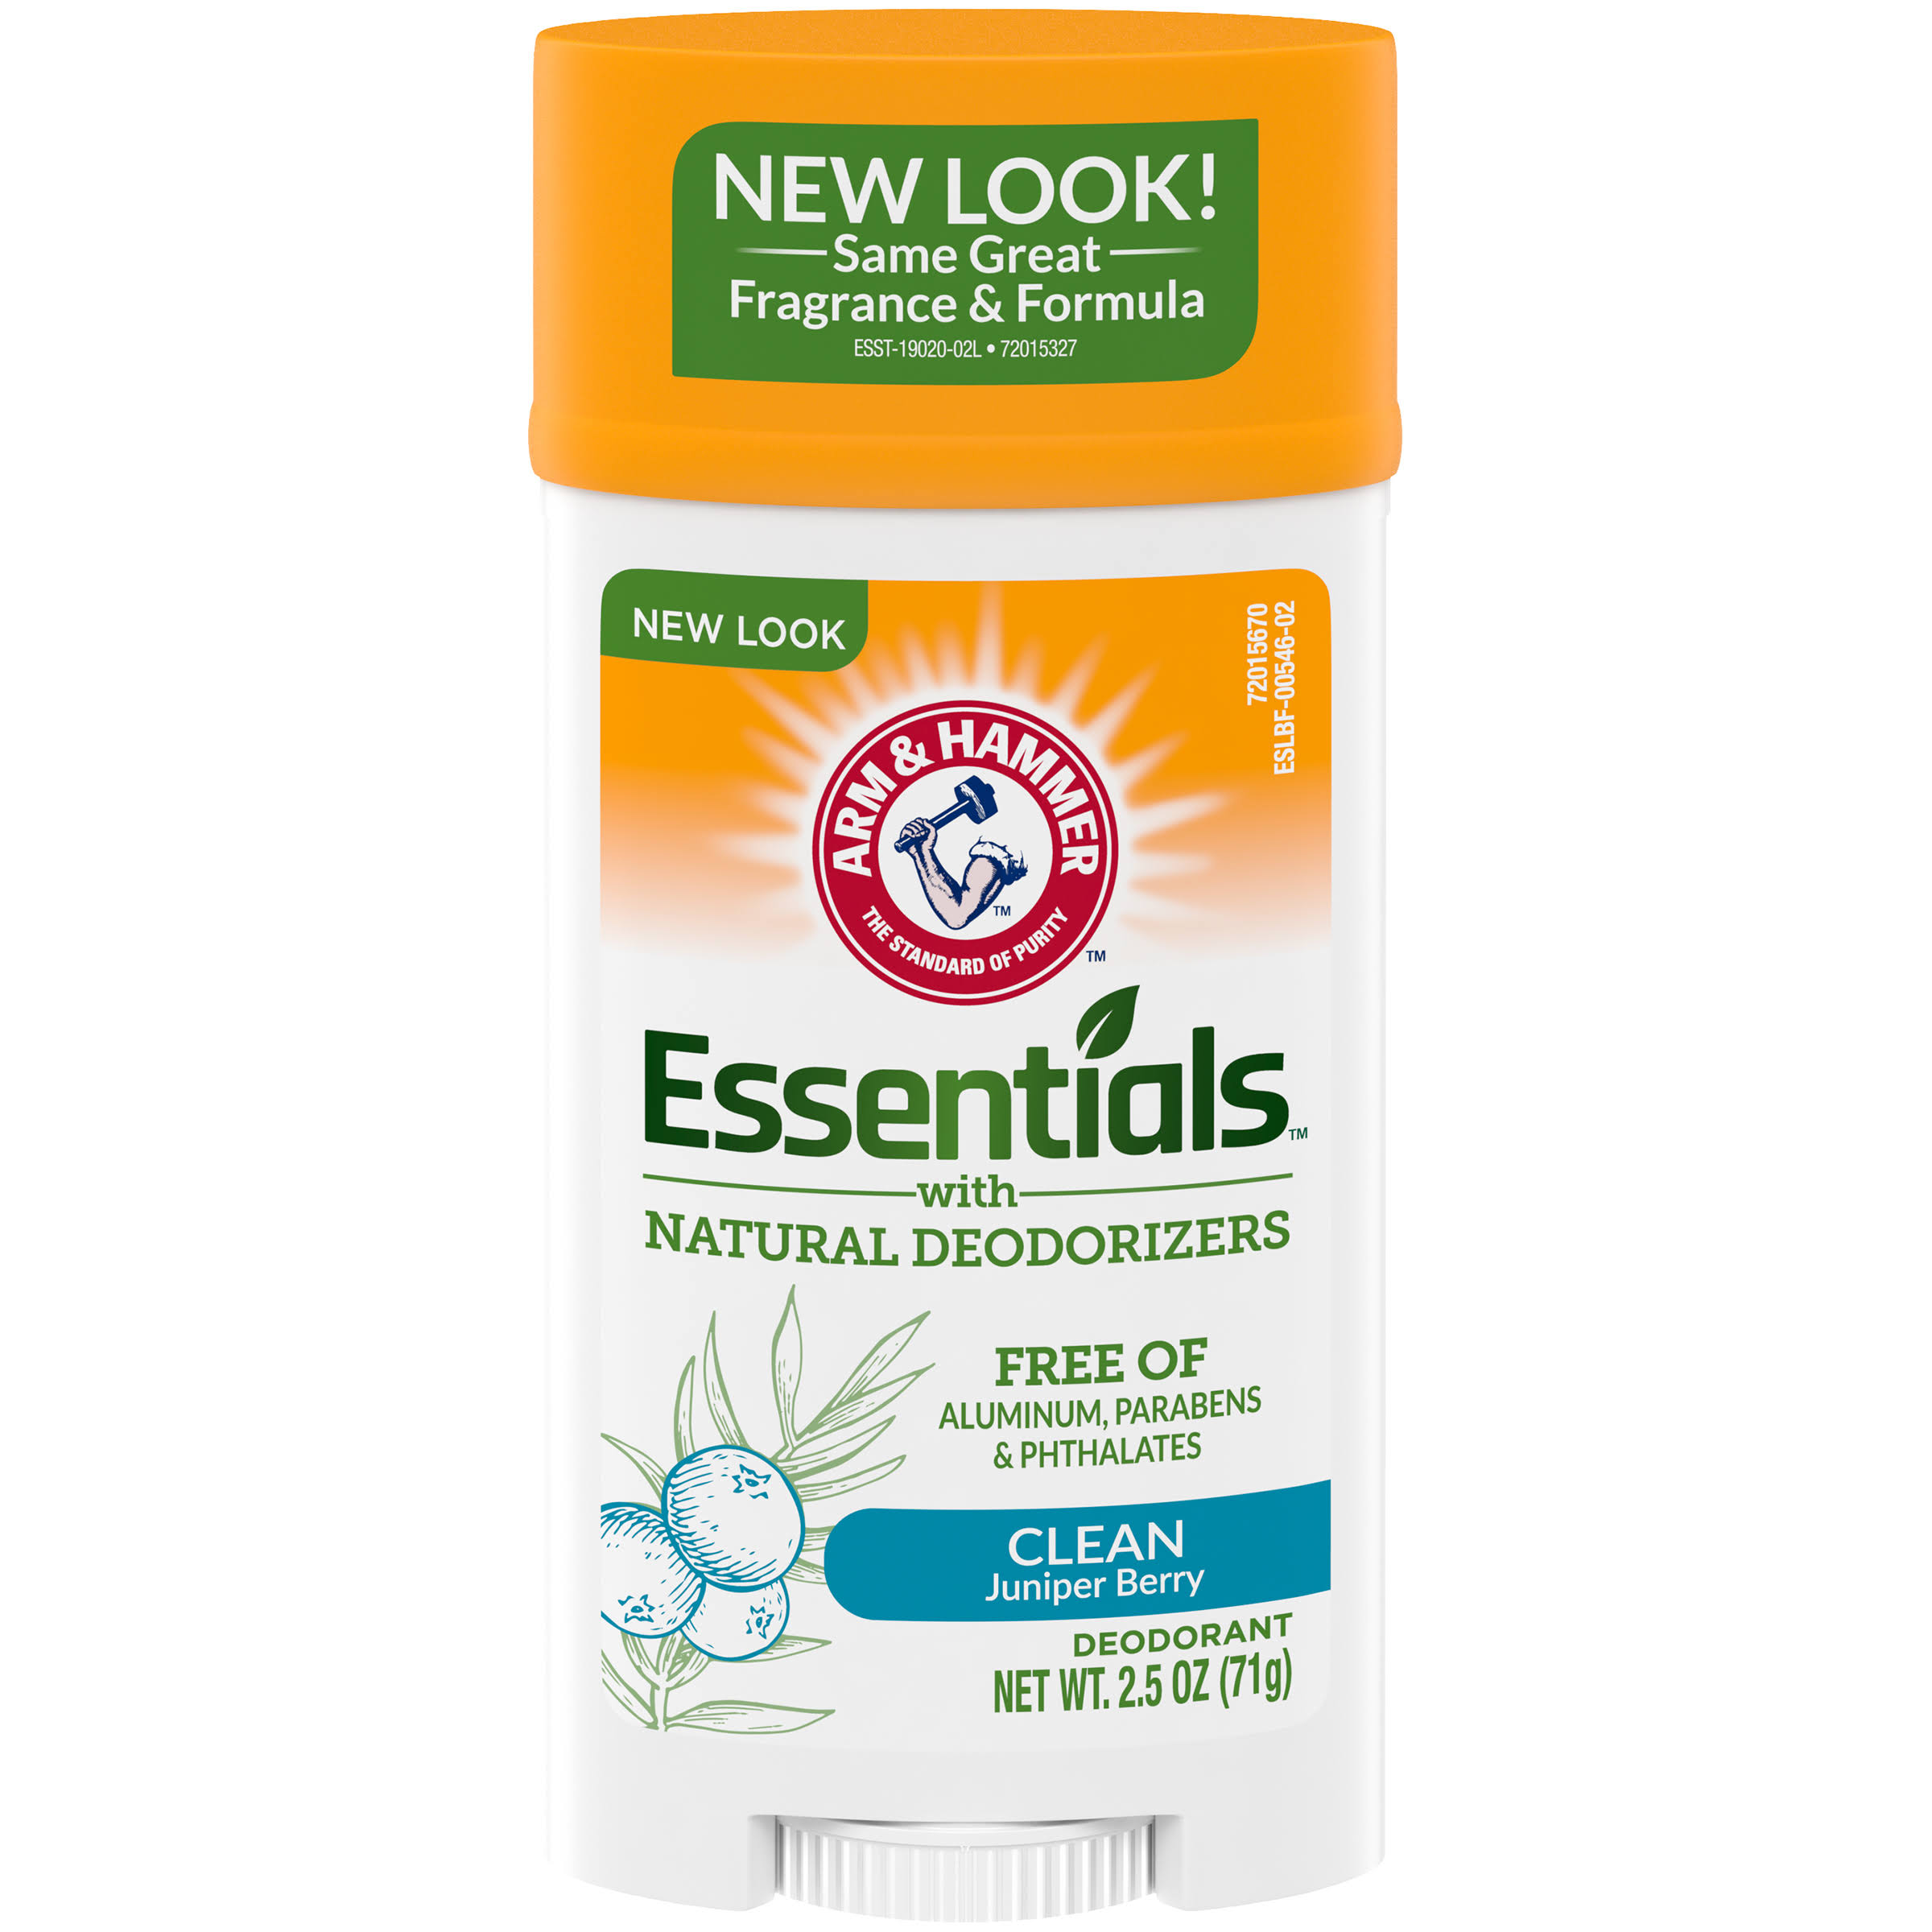 Arm & Hammer Essentials Deodorant - Clean. 2.5oz